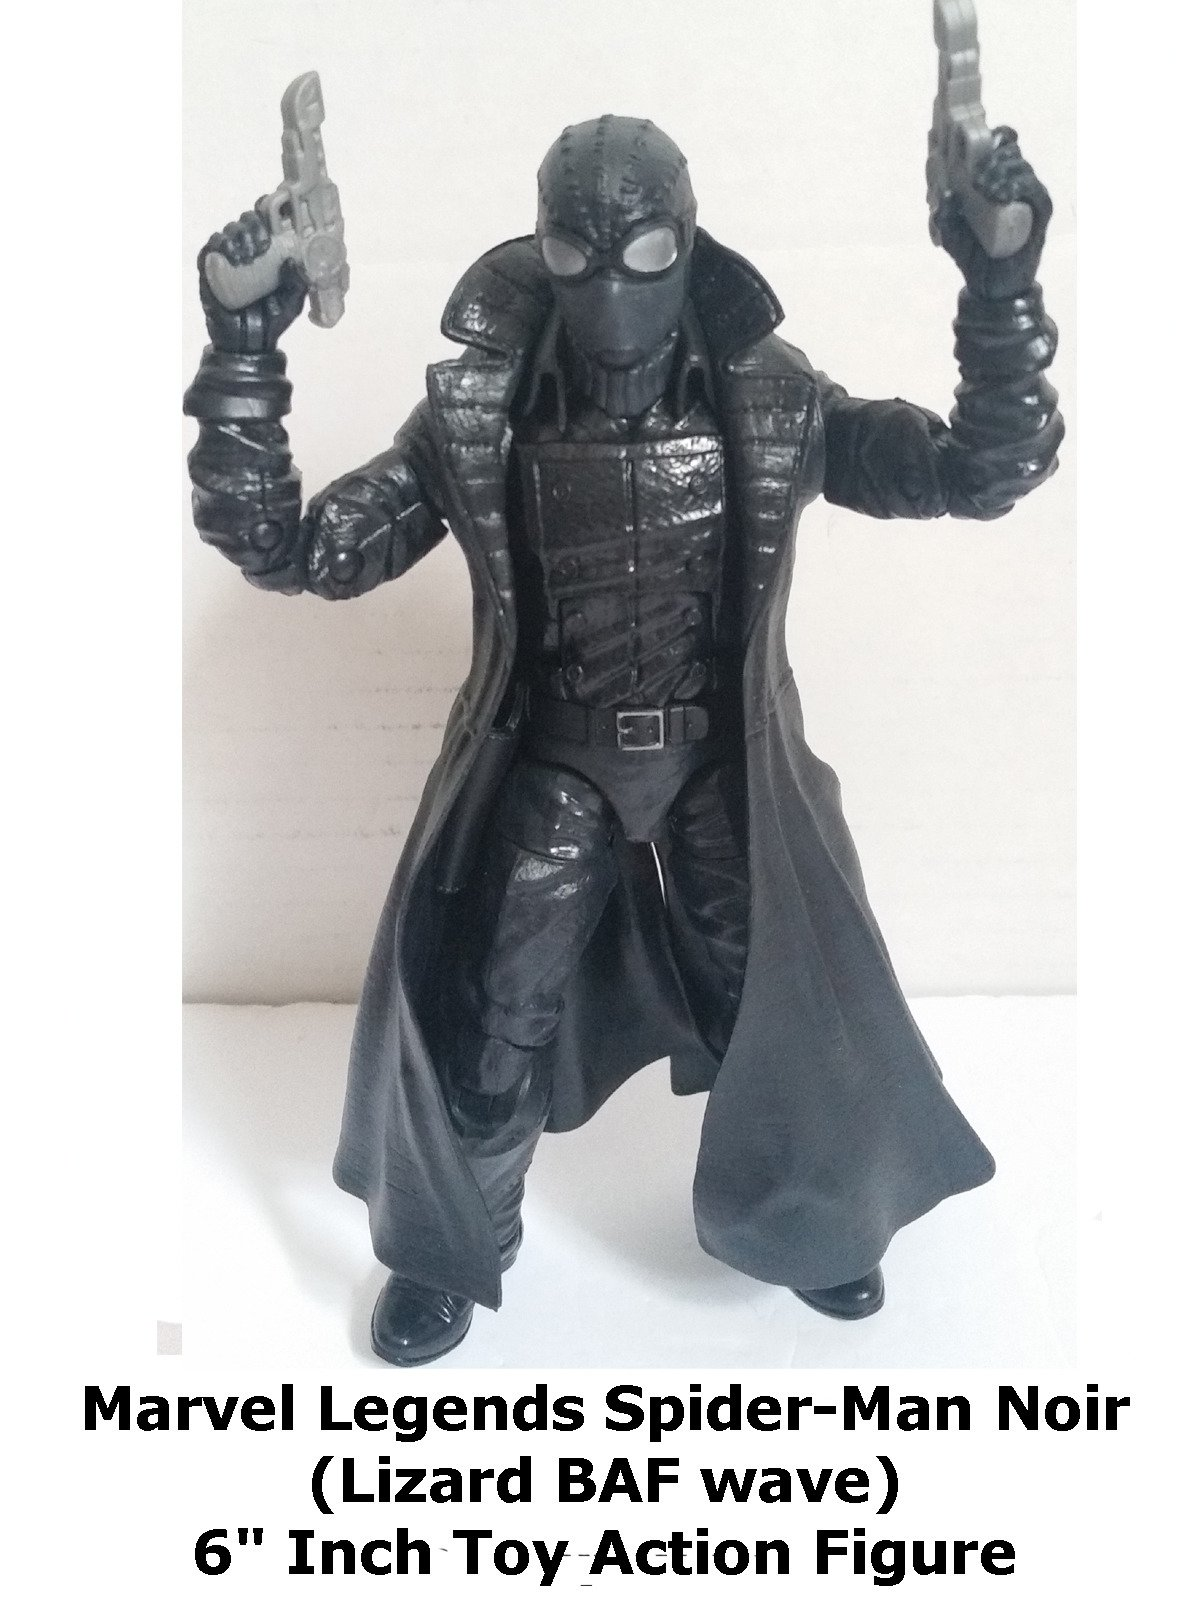 "Review: Marvel Legends Spider-Man Noir (Lizard BAF wave) 6"" Inch Toy Action Figure"